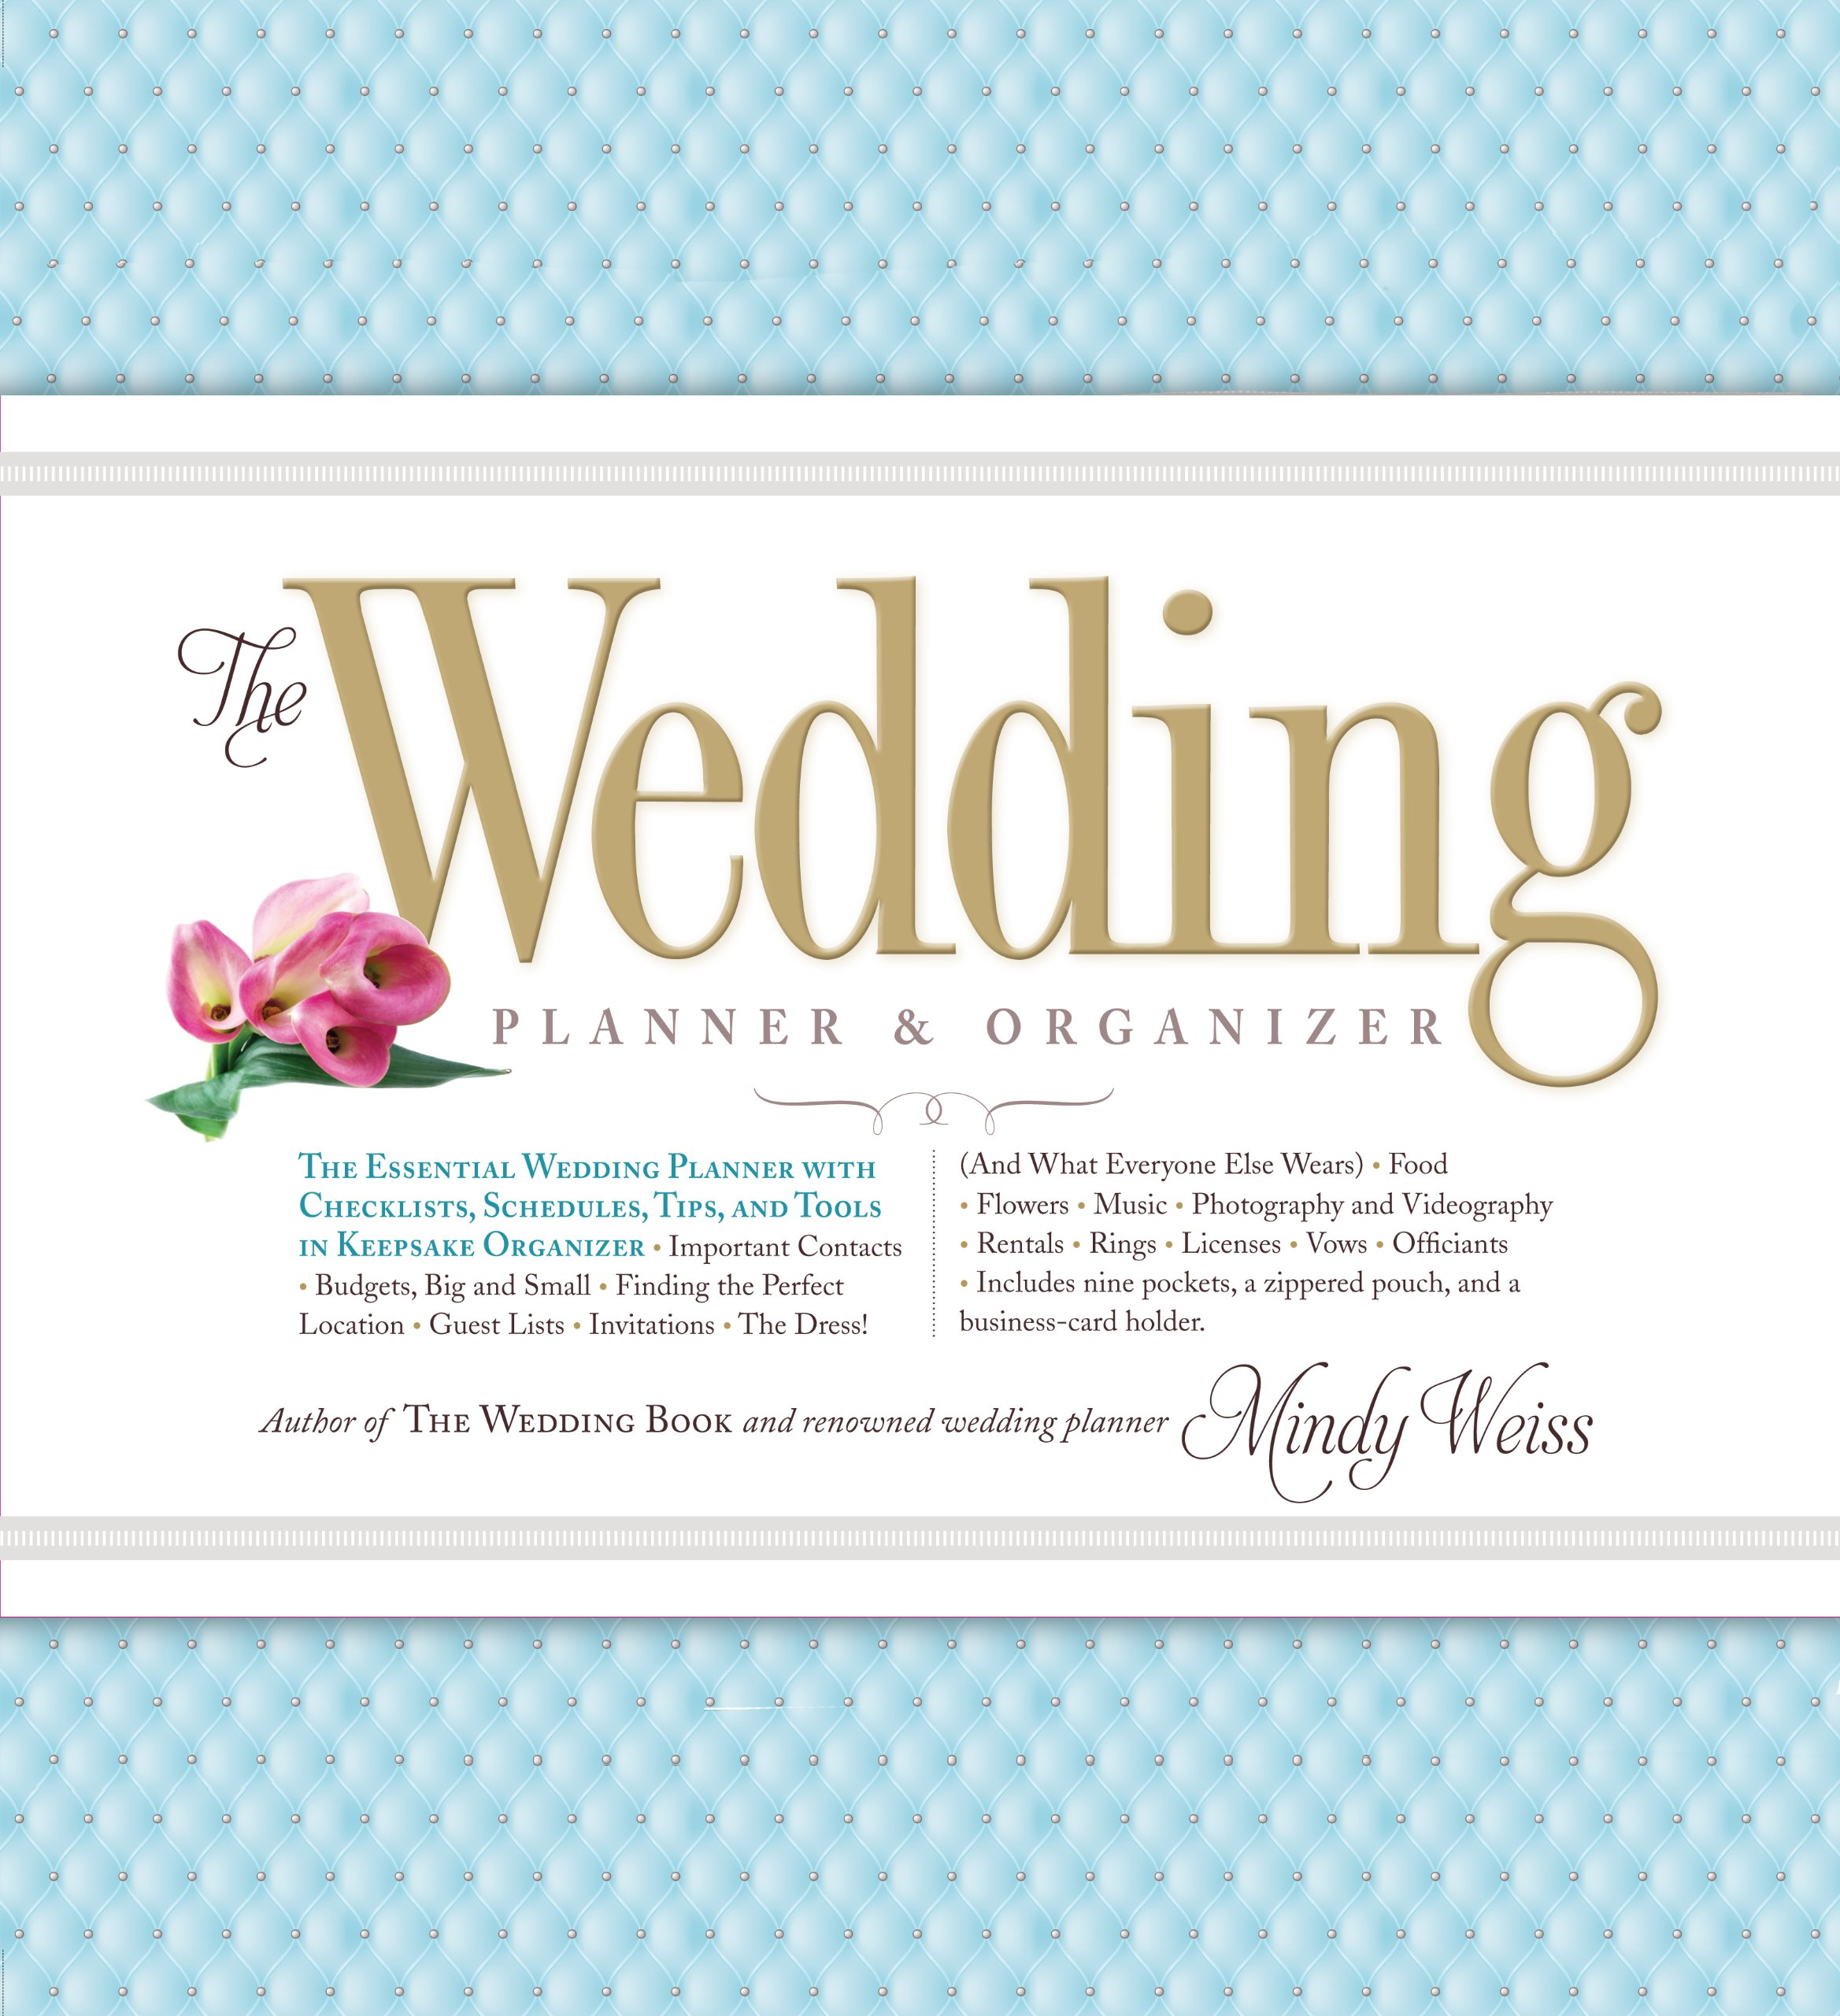 The Wedding Planner Organizer Mindy Weiss 9780761165972 Amazon